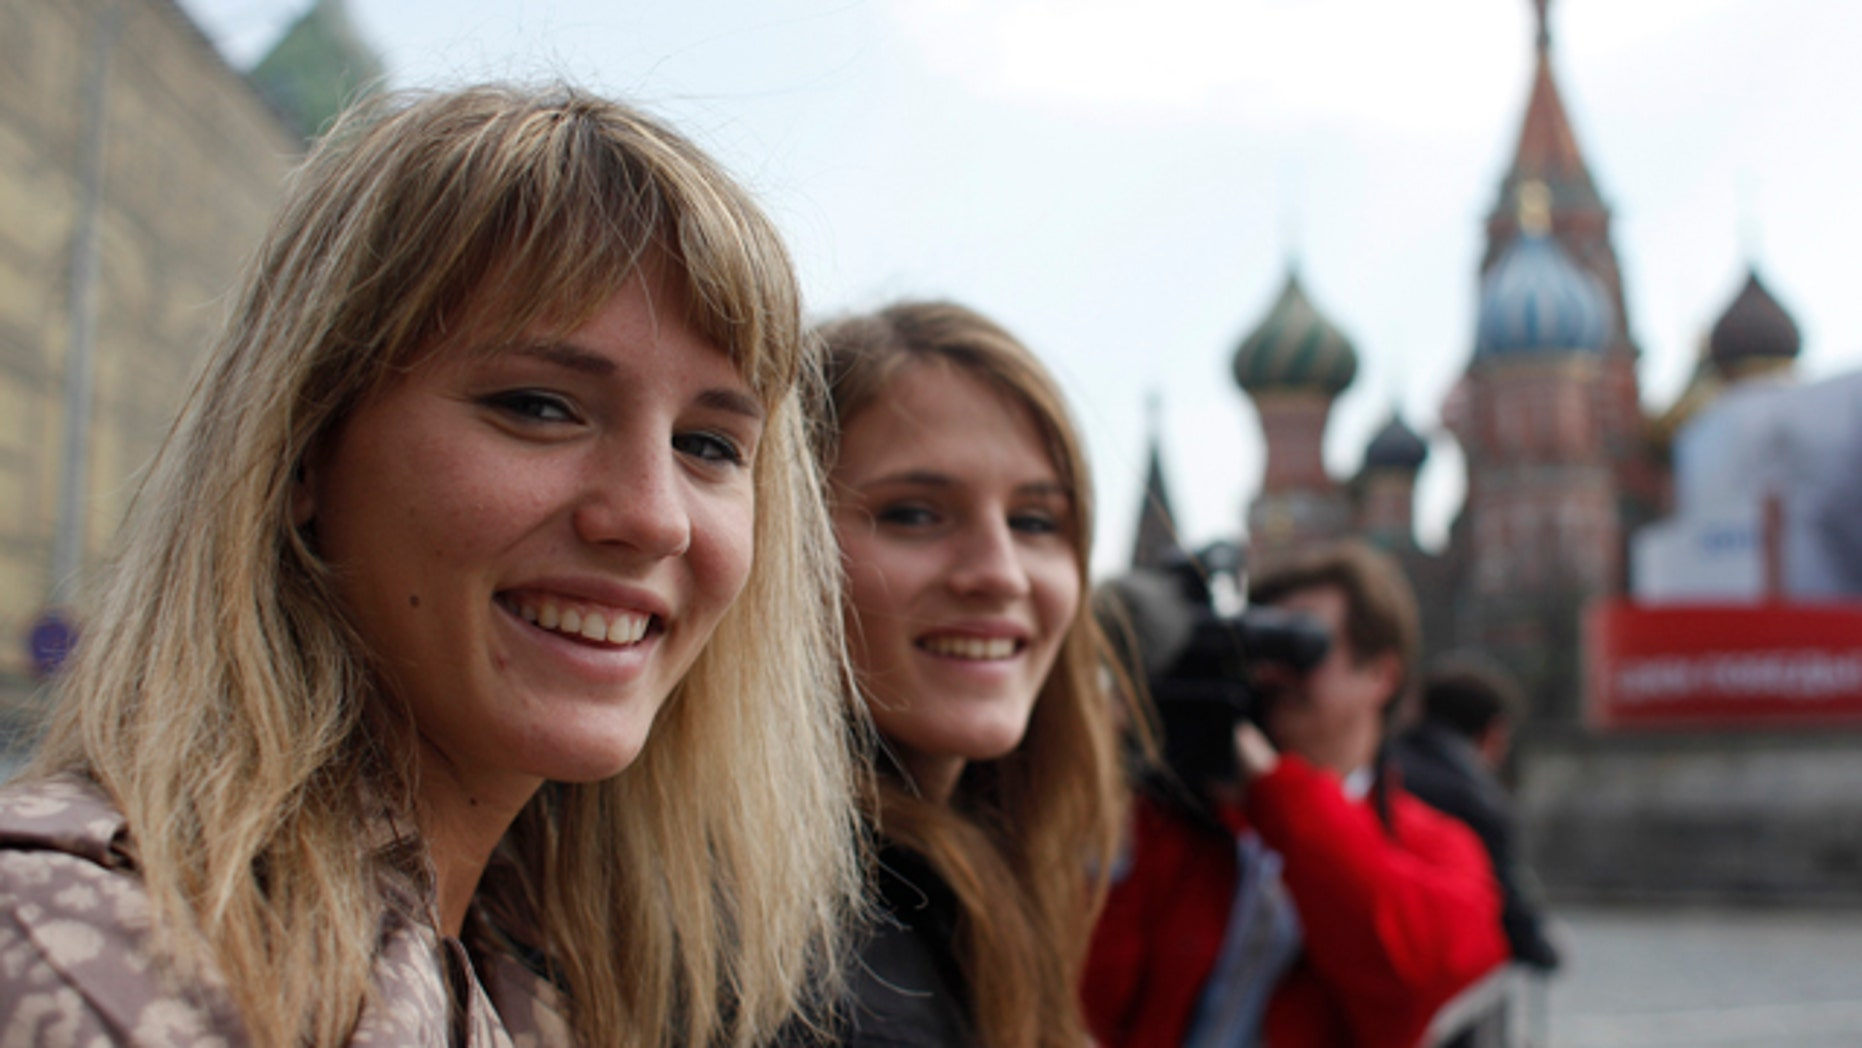 May 3: Twin sisters Jennifer, left, and Jessica, pose for a photo in front of St. Basil's Cathedral in the Red Square in Moscow, Russia. More than 16 years after their American adoptive parents traveled to Russia to collect two malnourished 2-year-old girls named Galina and Svetlana, the twins, now Jessica and Jennifer Allen, have made their first trip back to Children's Home No. 13, reclaiming their Russian heritage, discovering to their delight they feel at home in Russia, too. (AP)